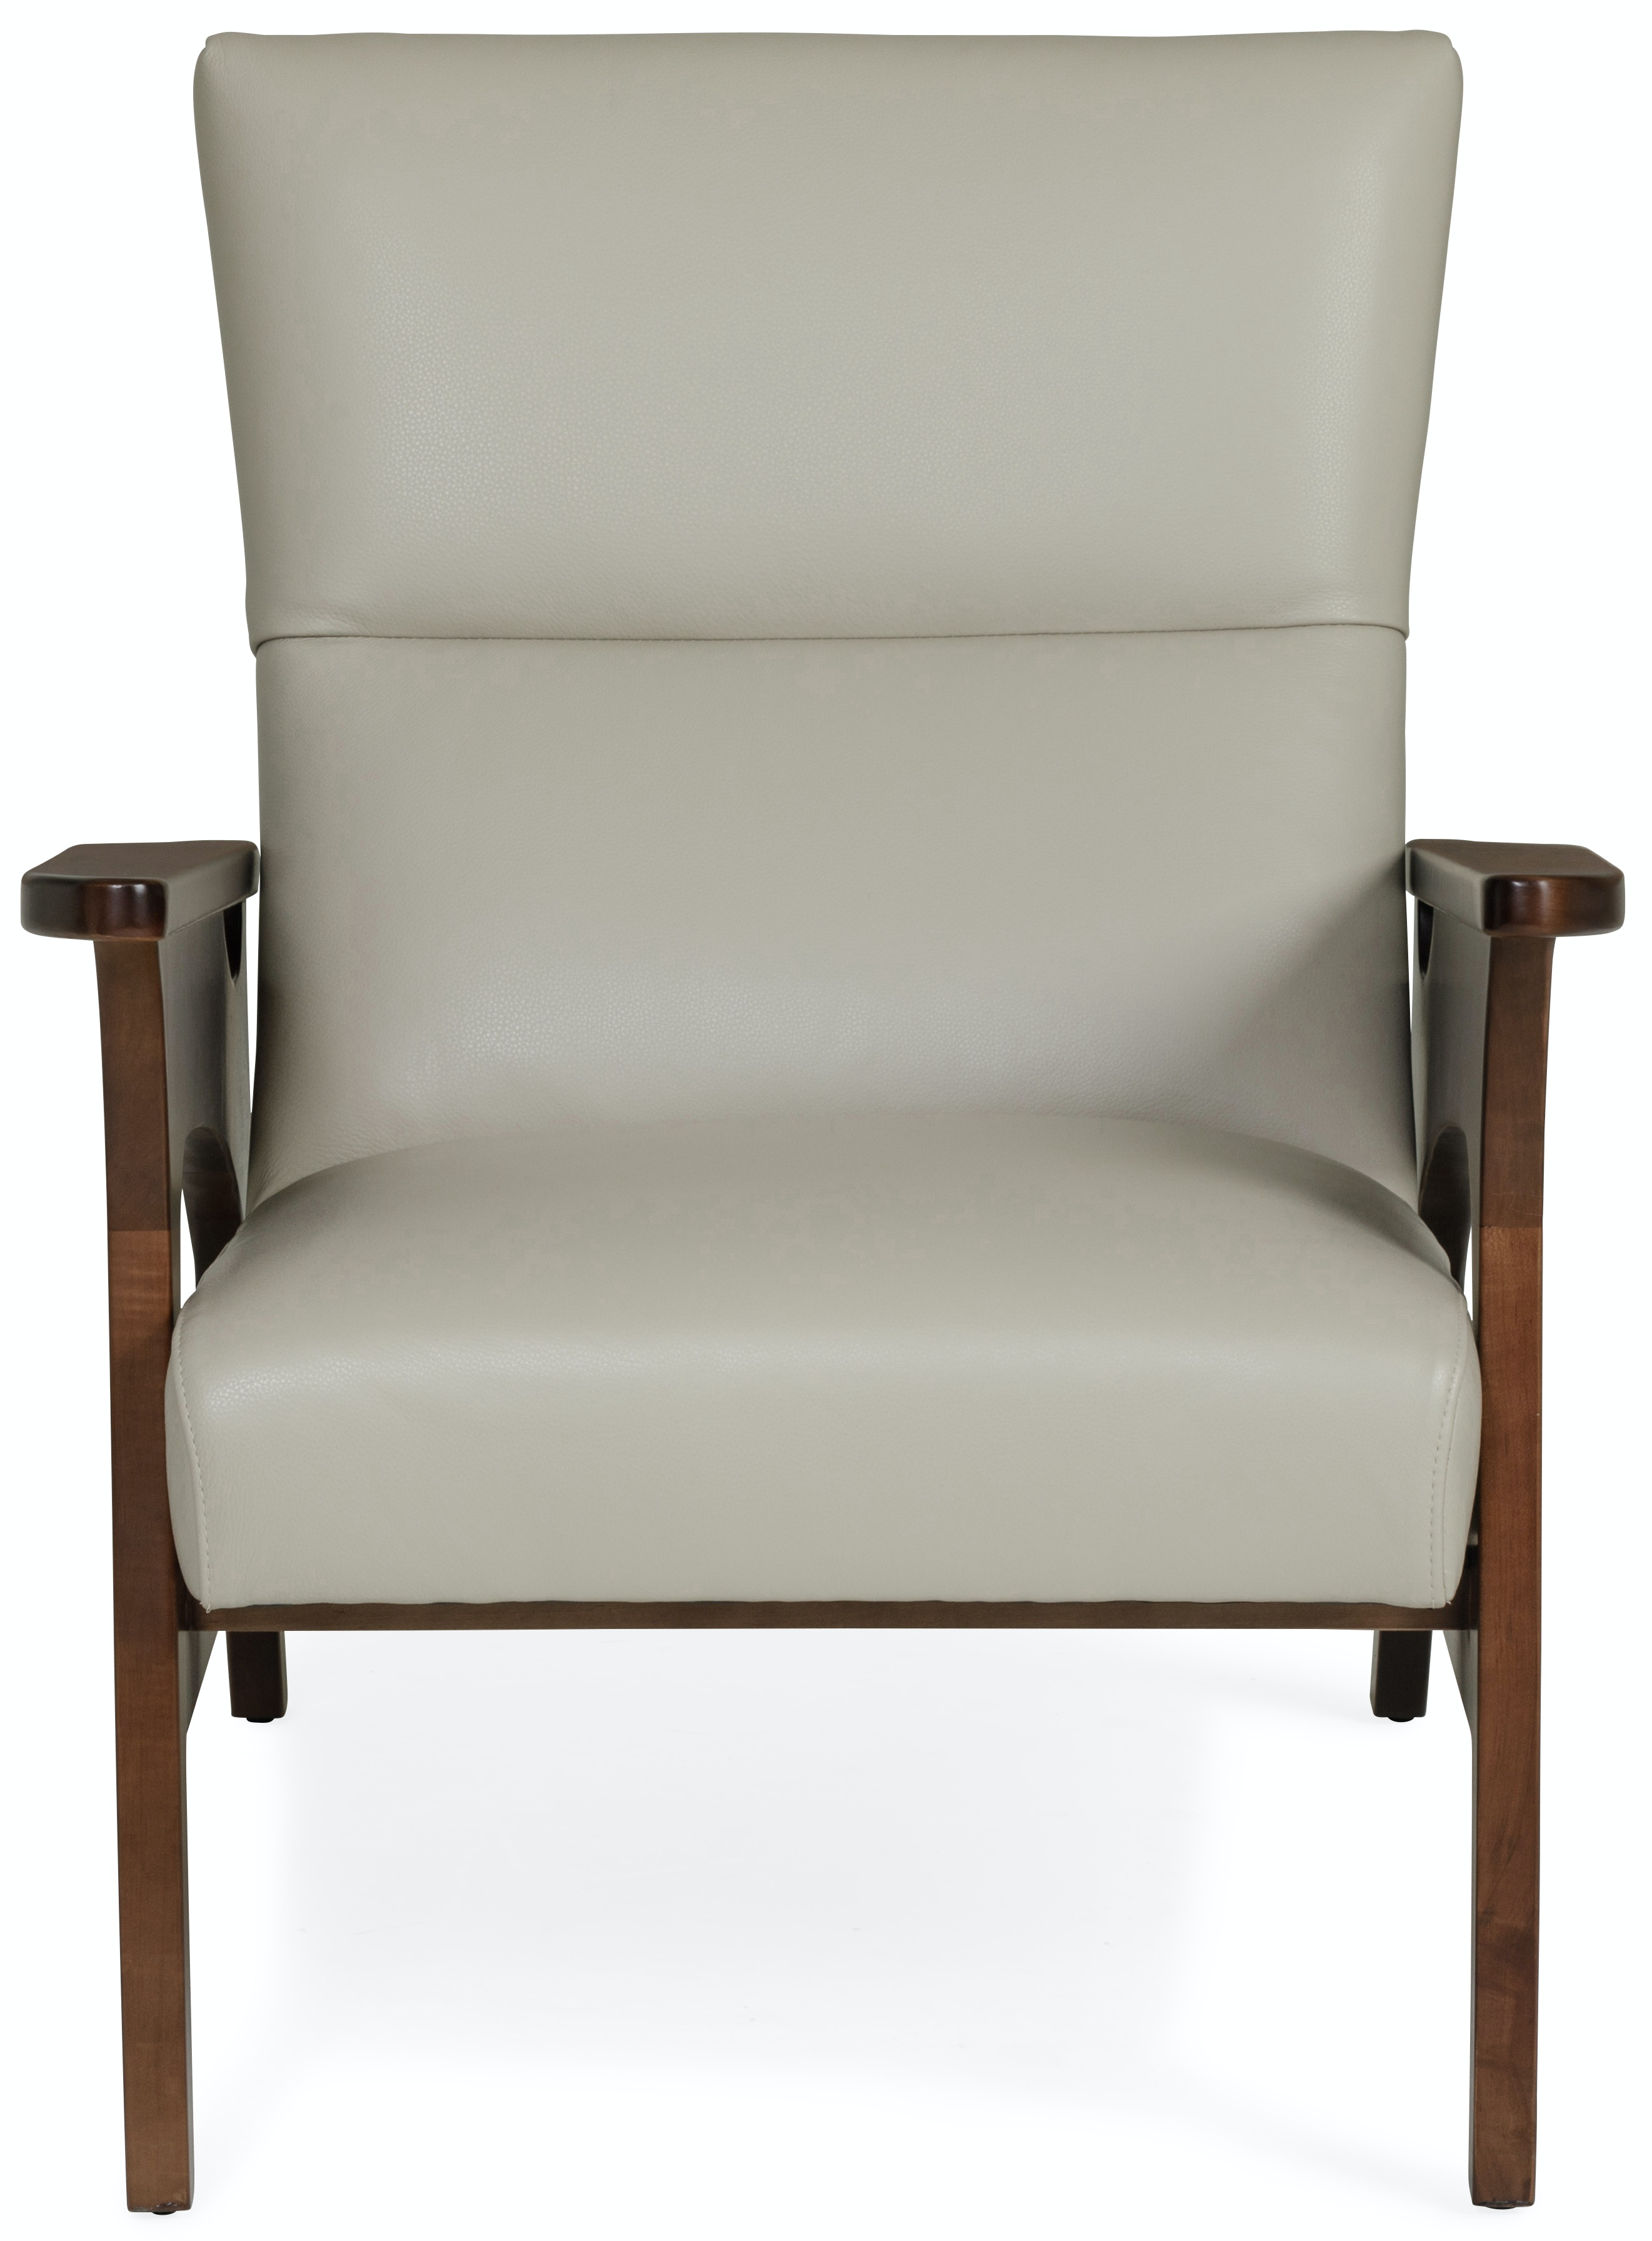 leather accent chairs best gaming chair for back pain living room charlotte st 514618